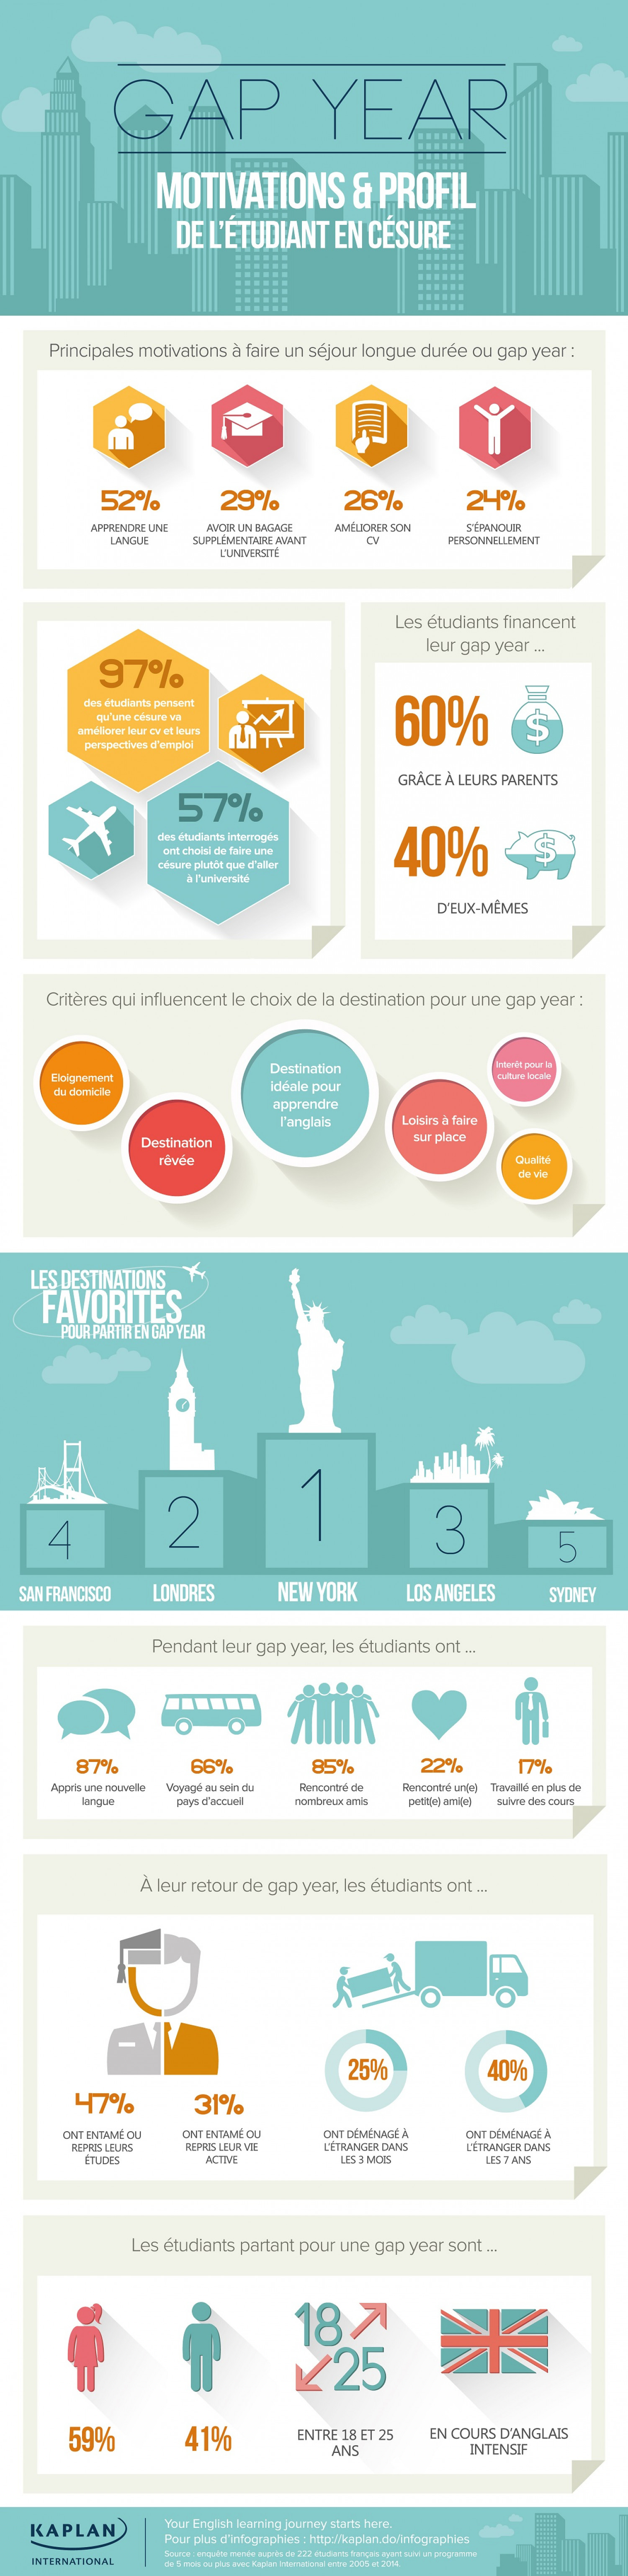 Gap Year Motivations & Profil Infographic